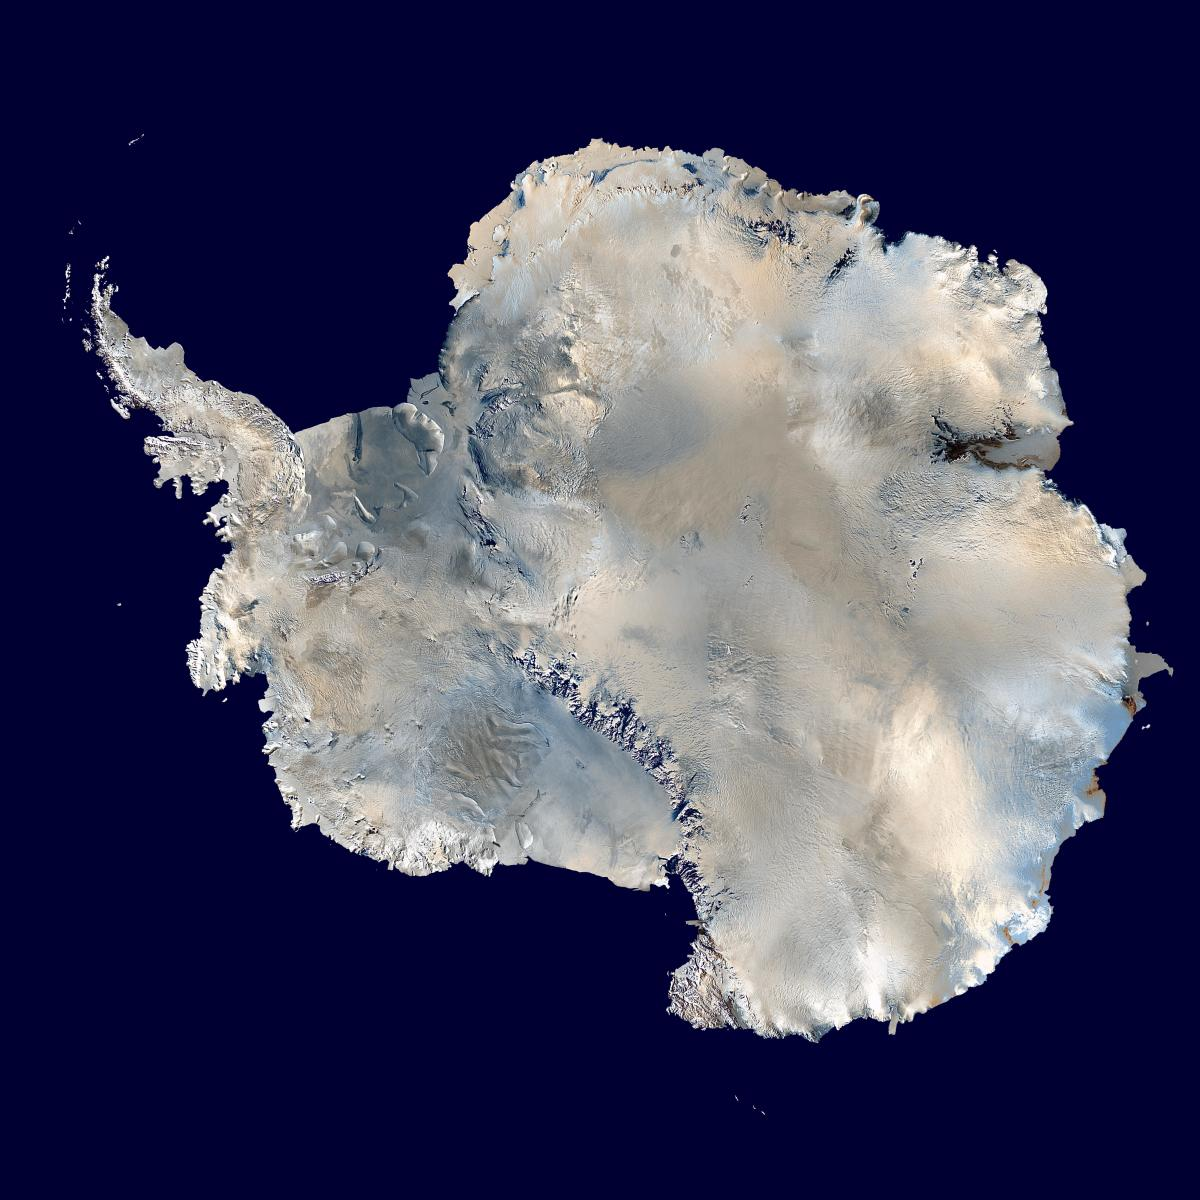 A satellite composite image of Antarctica. (Photo: Wikimedia Commons)